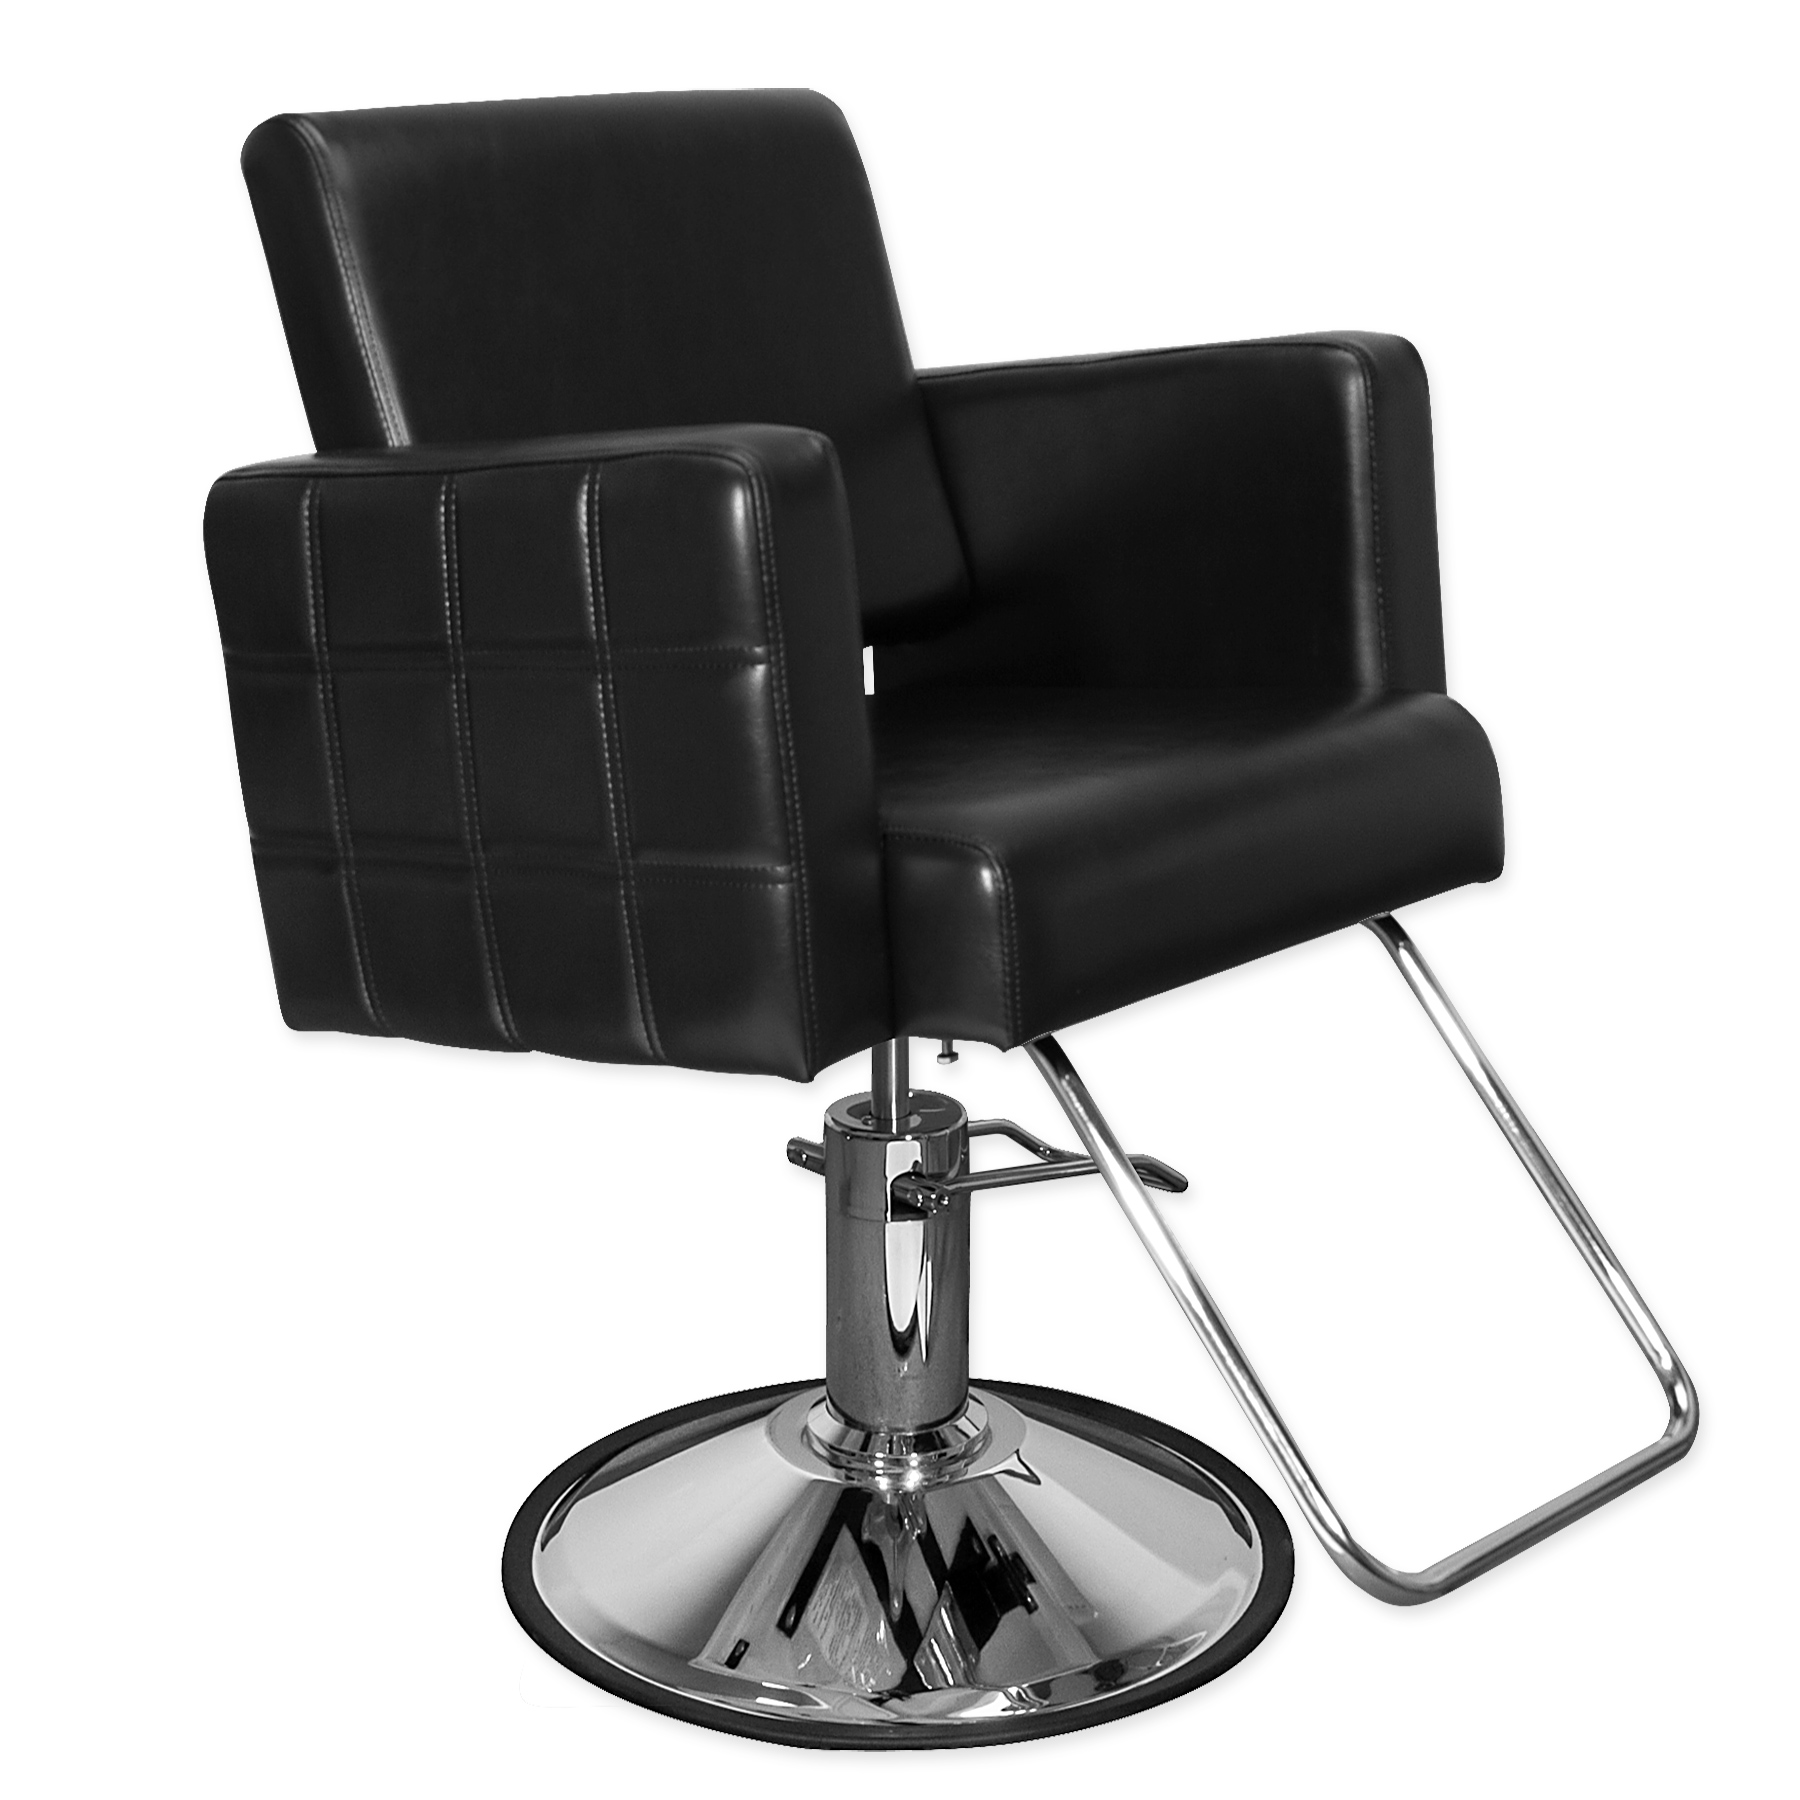 Havana Stylist Chair Quilted Black alternative product image 7